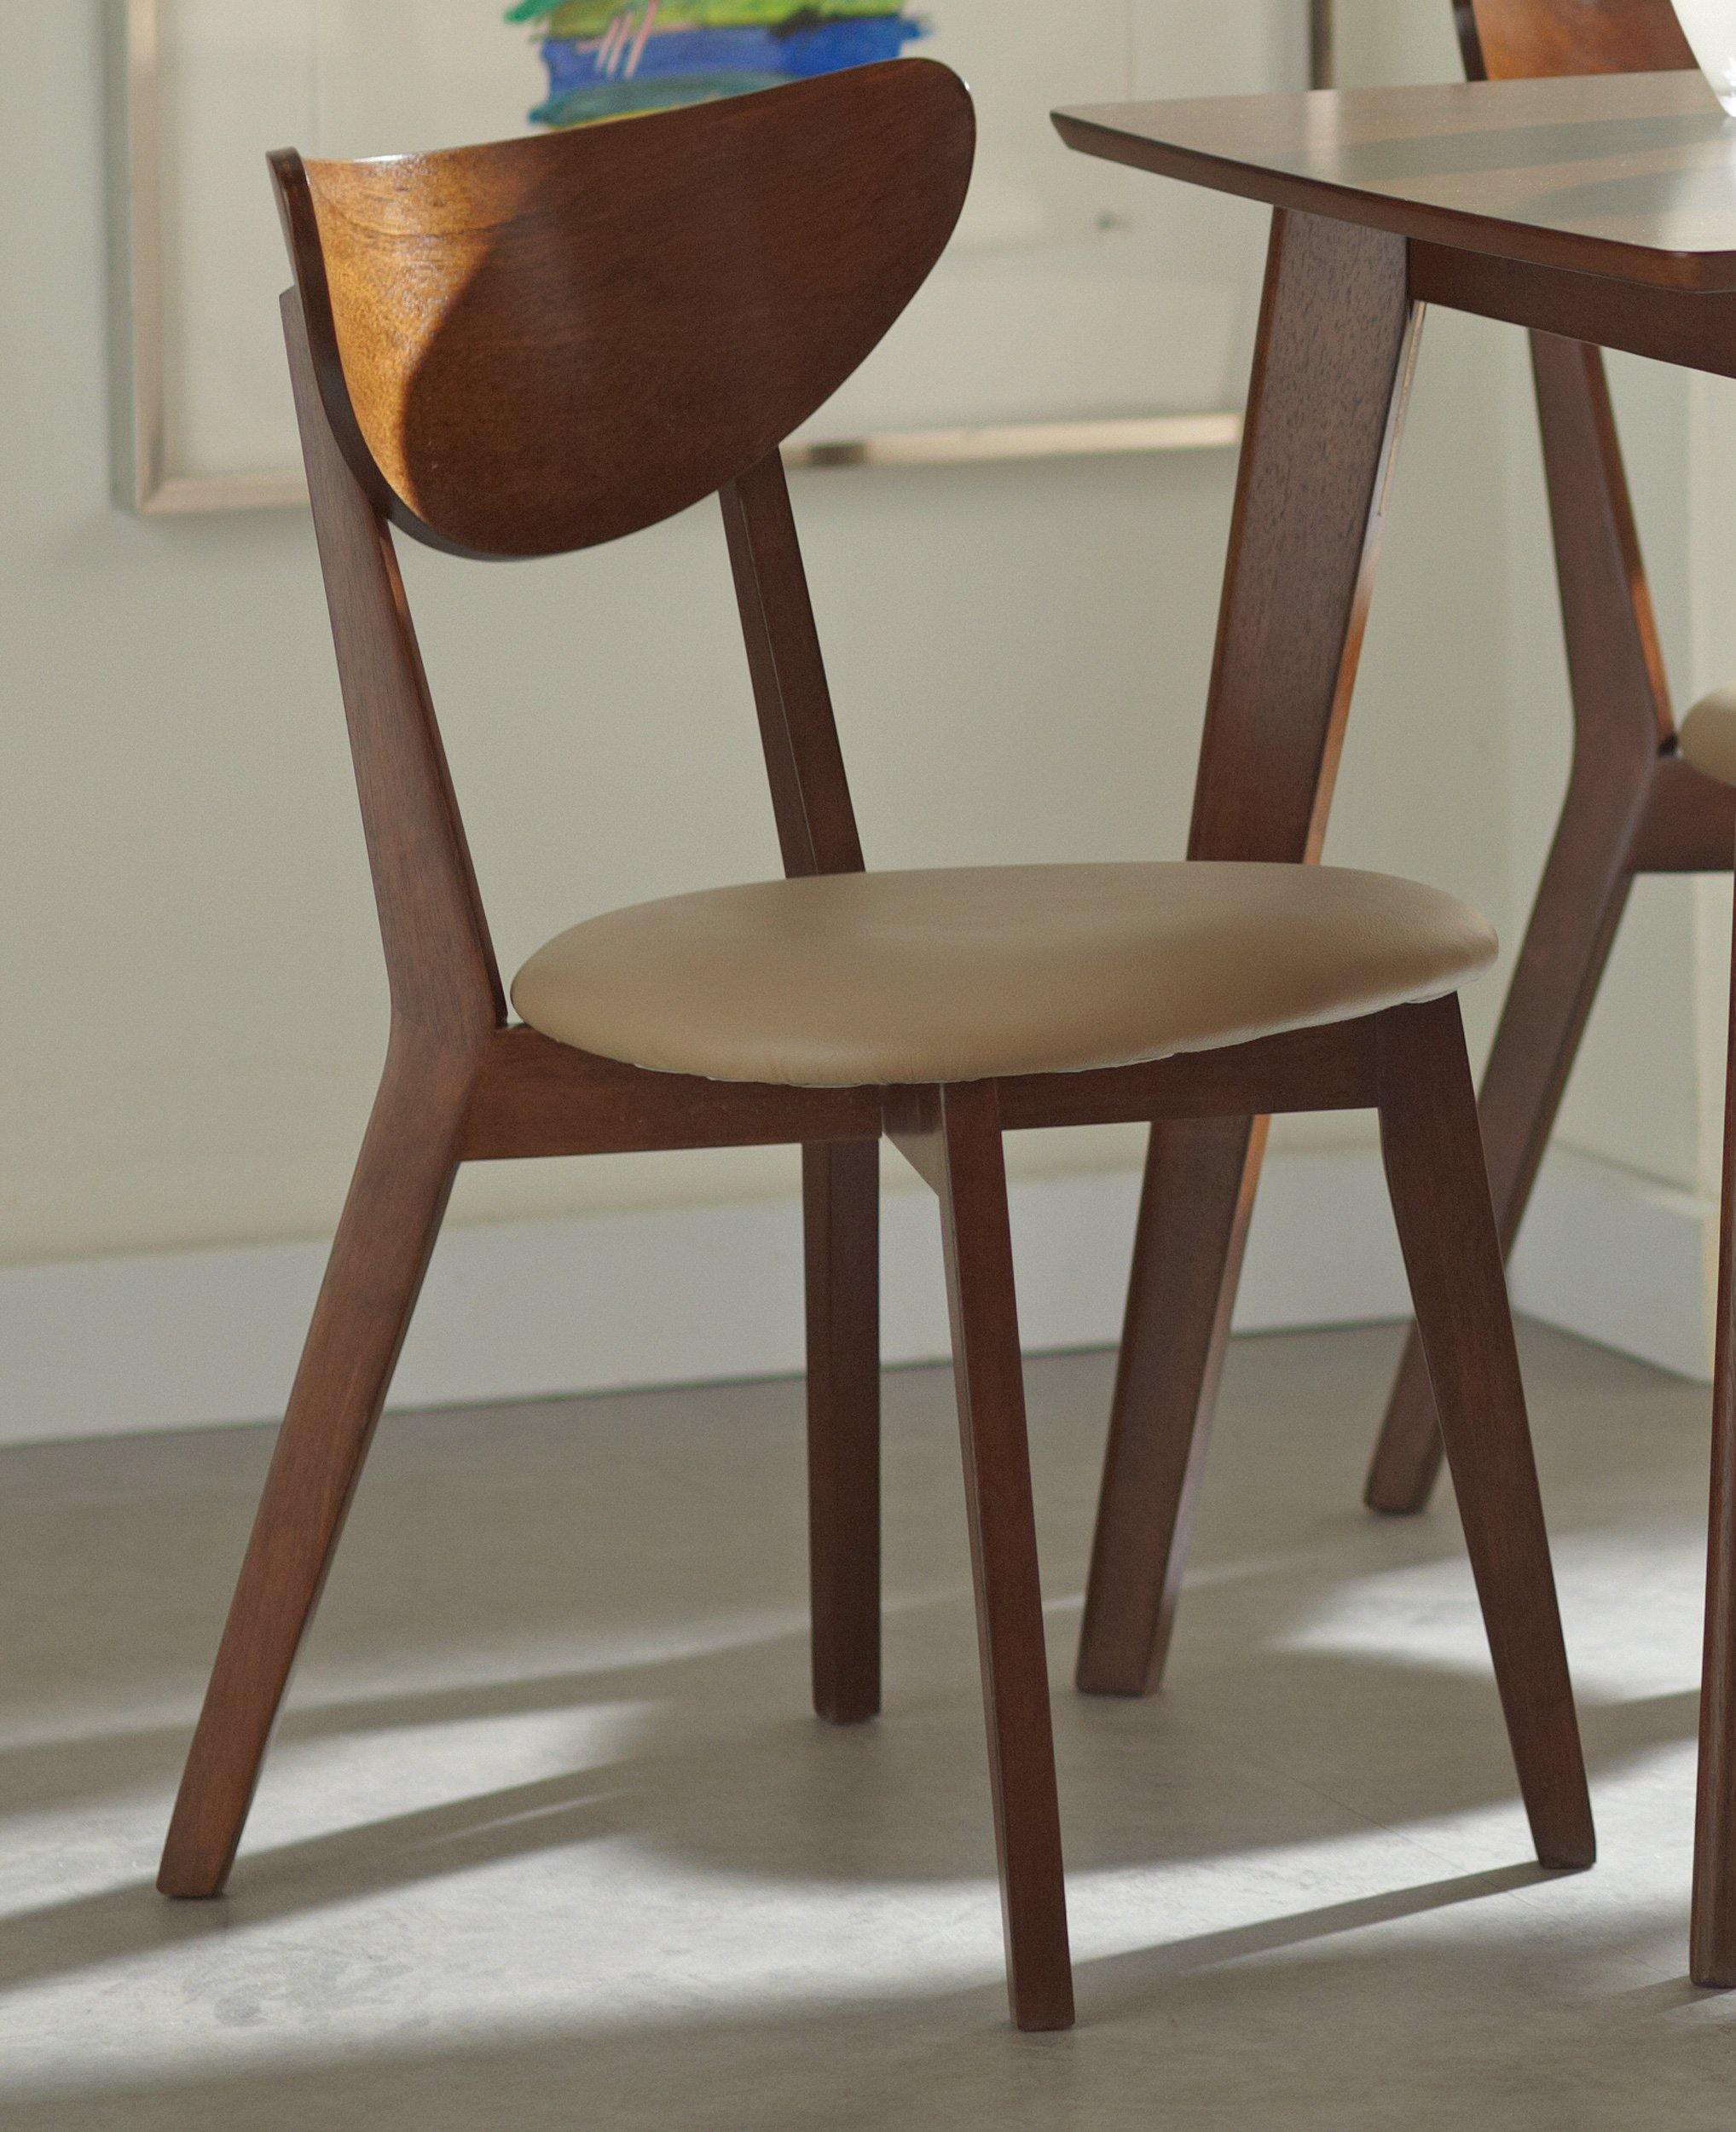 Kersey 103062 Tan pu Dining Chair1 By coaster - sofafair.com